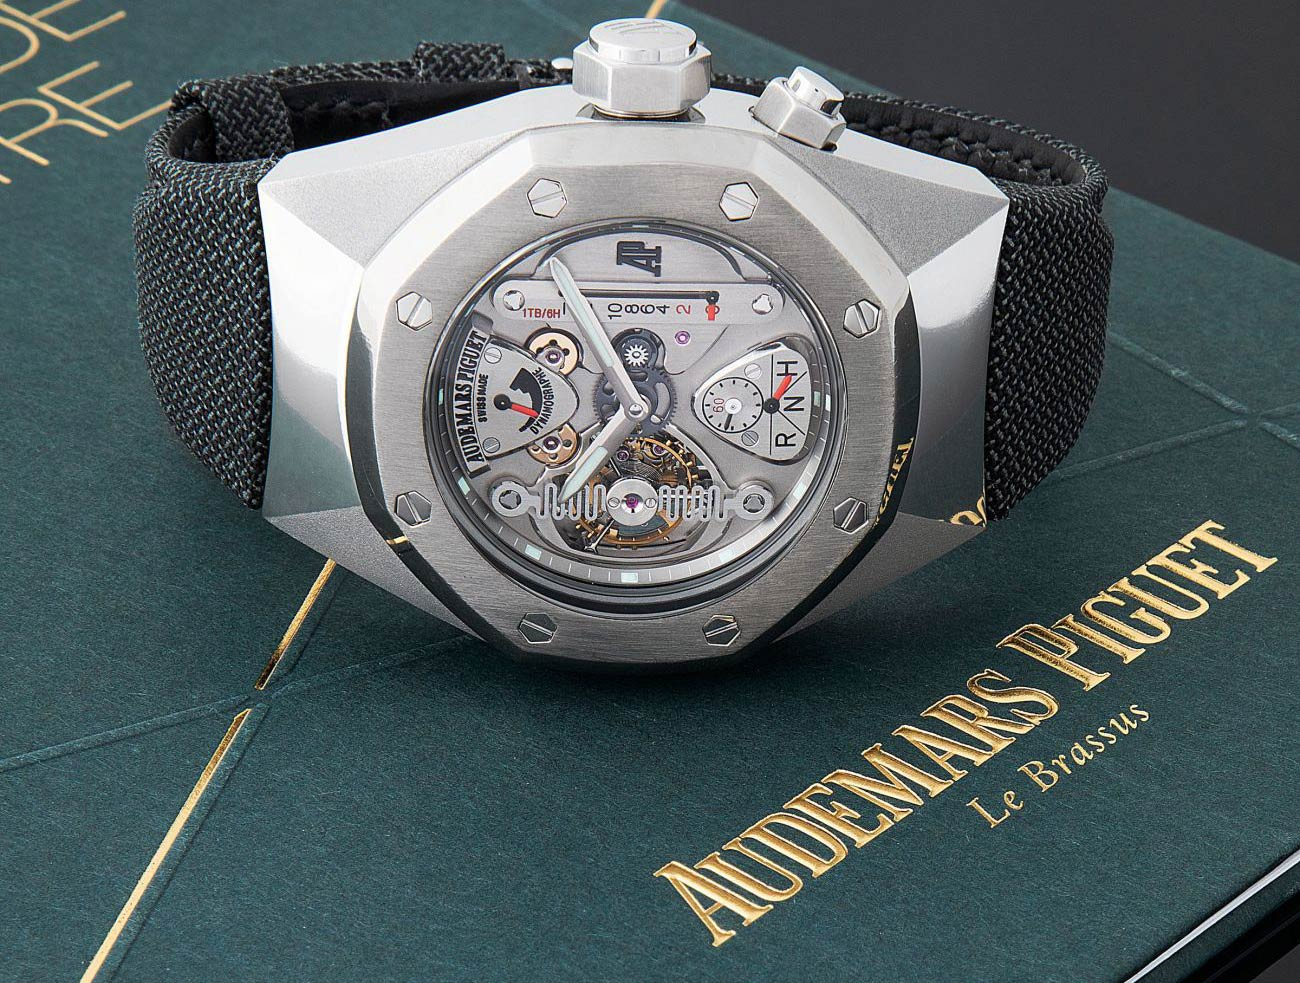 Lot 256 Audemars Piguet: Extremely Rare 150 Pieces Limited Edition, Semi-Skeletonized Tourbillon Oversized Royal Oak Concept Wristwatch in Alacrite, Reference 25980ai, with Extract from The Archives